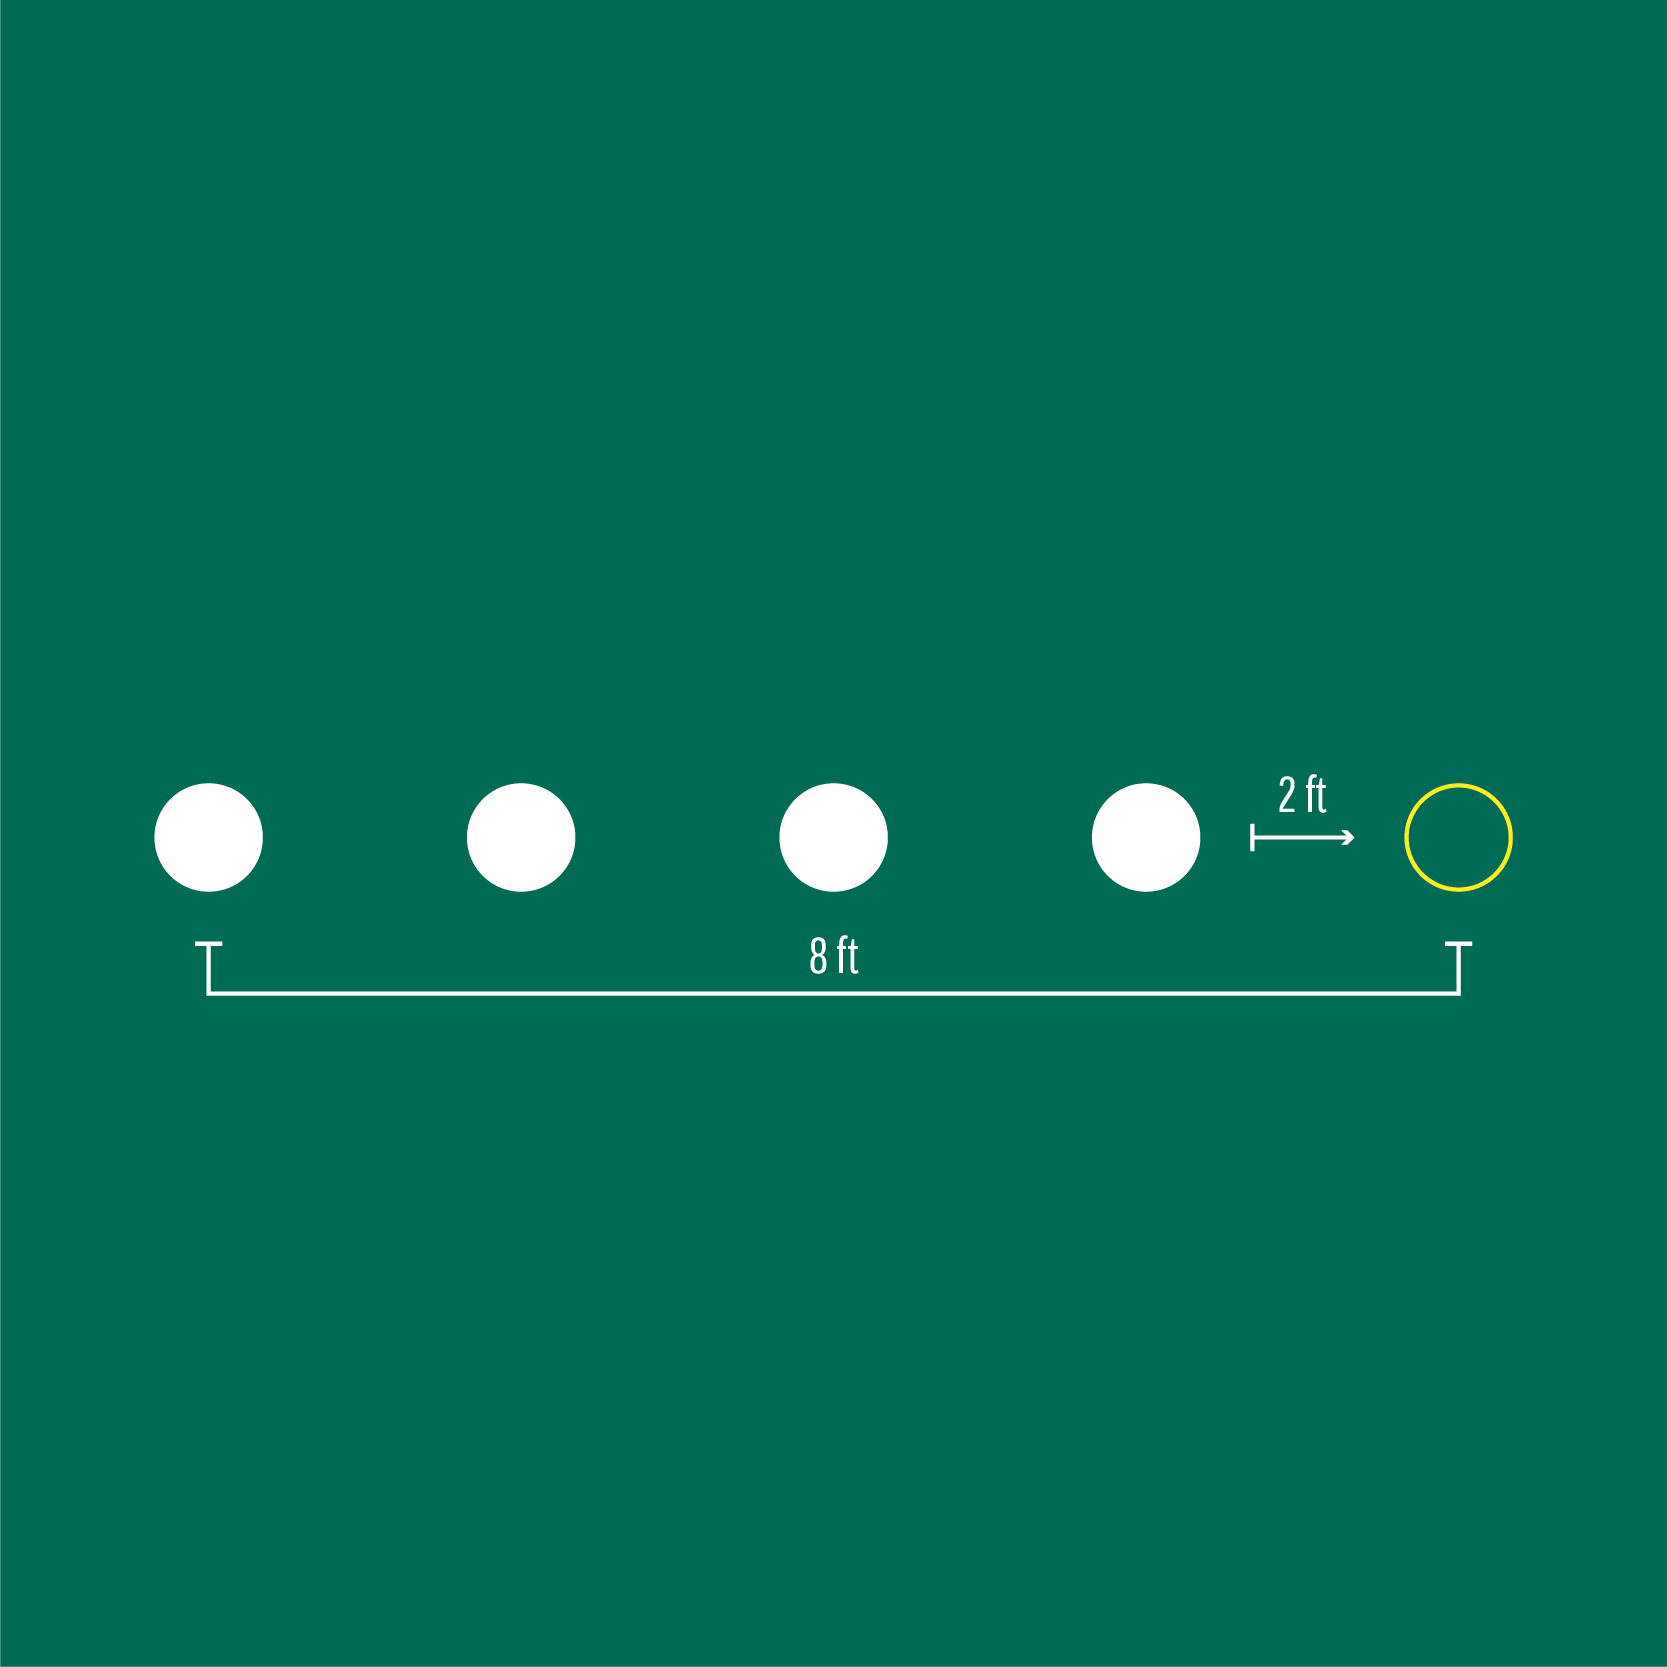 Line Drill putting practice graphic